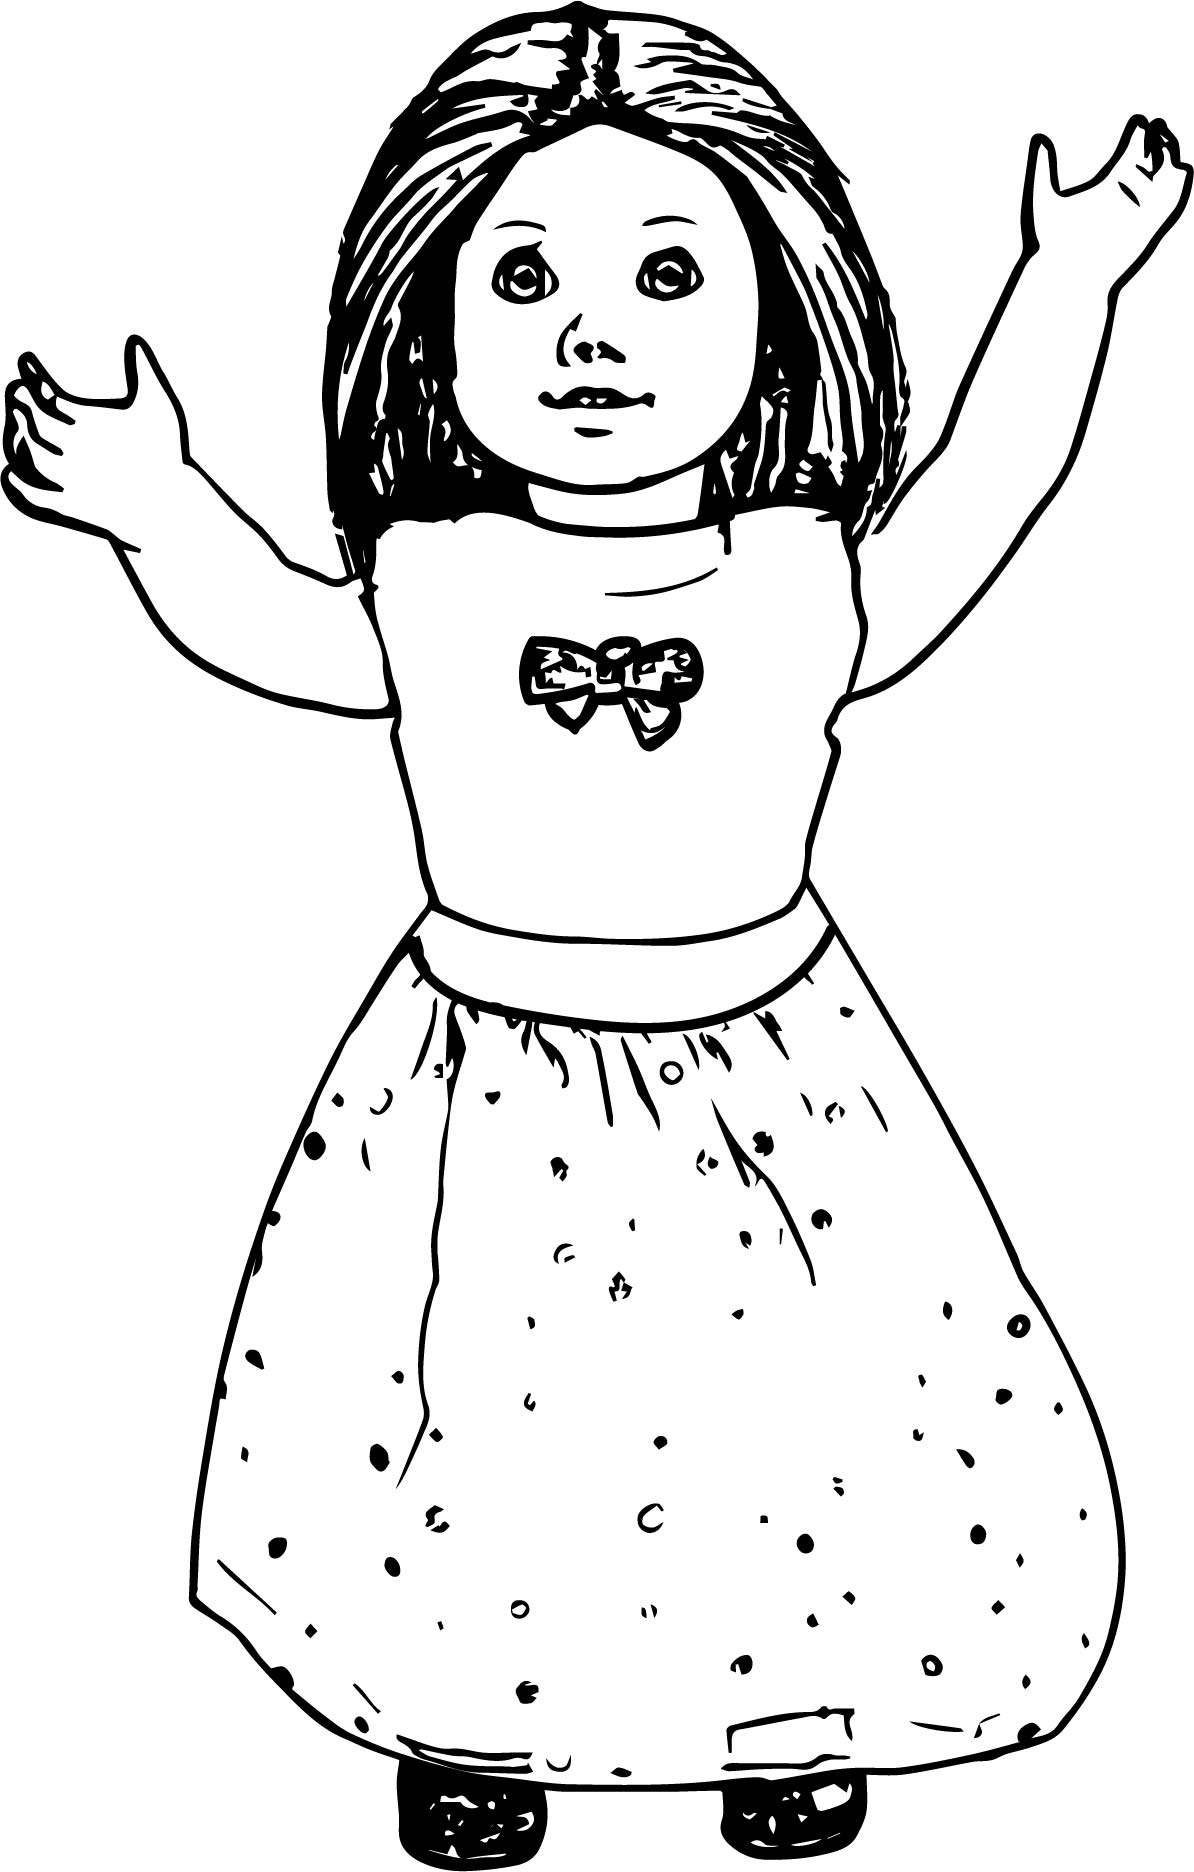 ag coloring pages agricultural aircraft coloring pages to print and color ag coloring pages